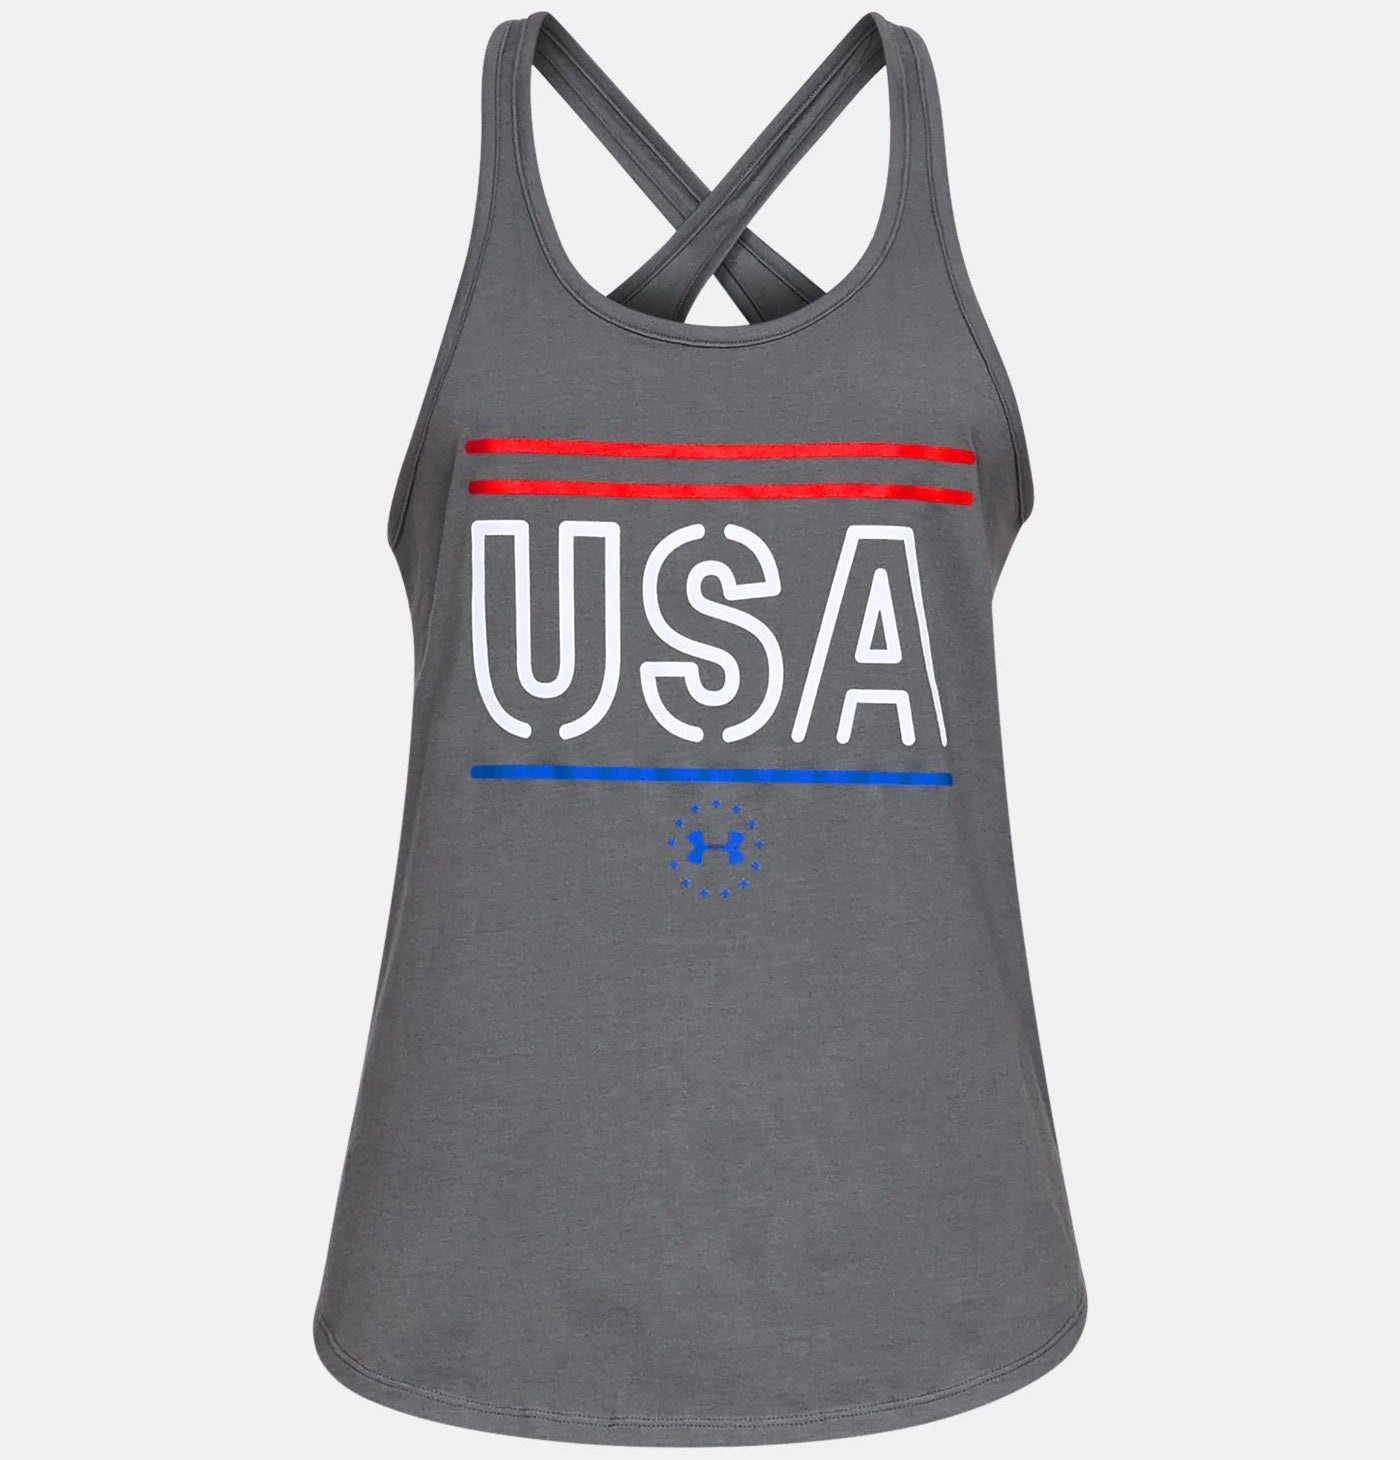 Gray women's tank top with USA in white on front and red and blue lines above and below